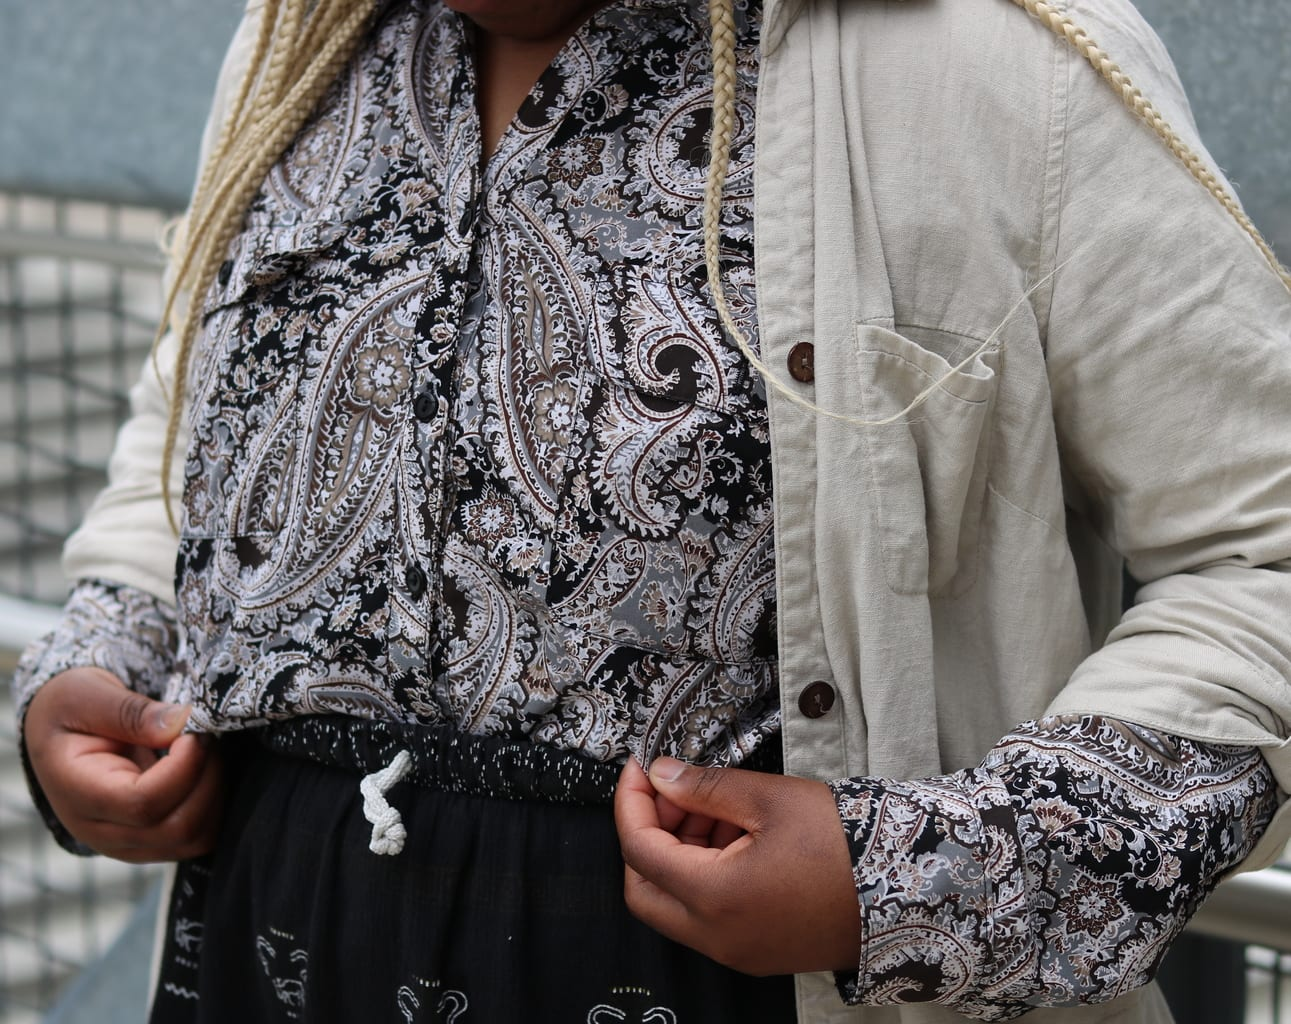 Cynthia's black and white paisley button-up collared shirt has a touch of tan detailing. She tucks it into her midi skirt and wears it with a light linen trench coat.